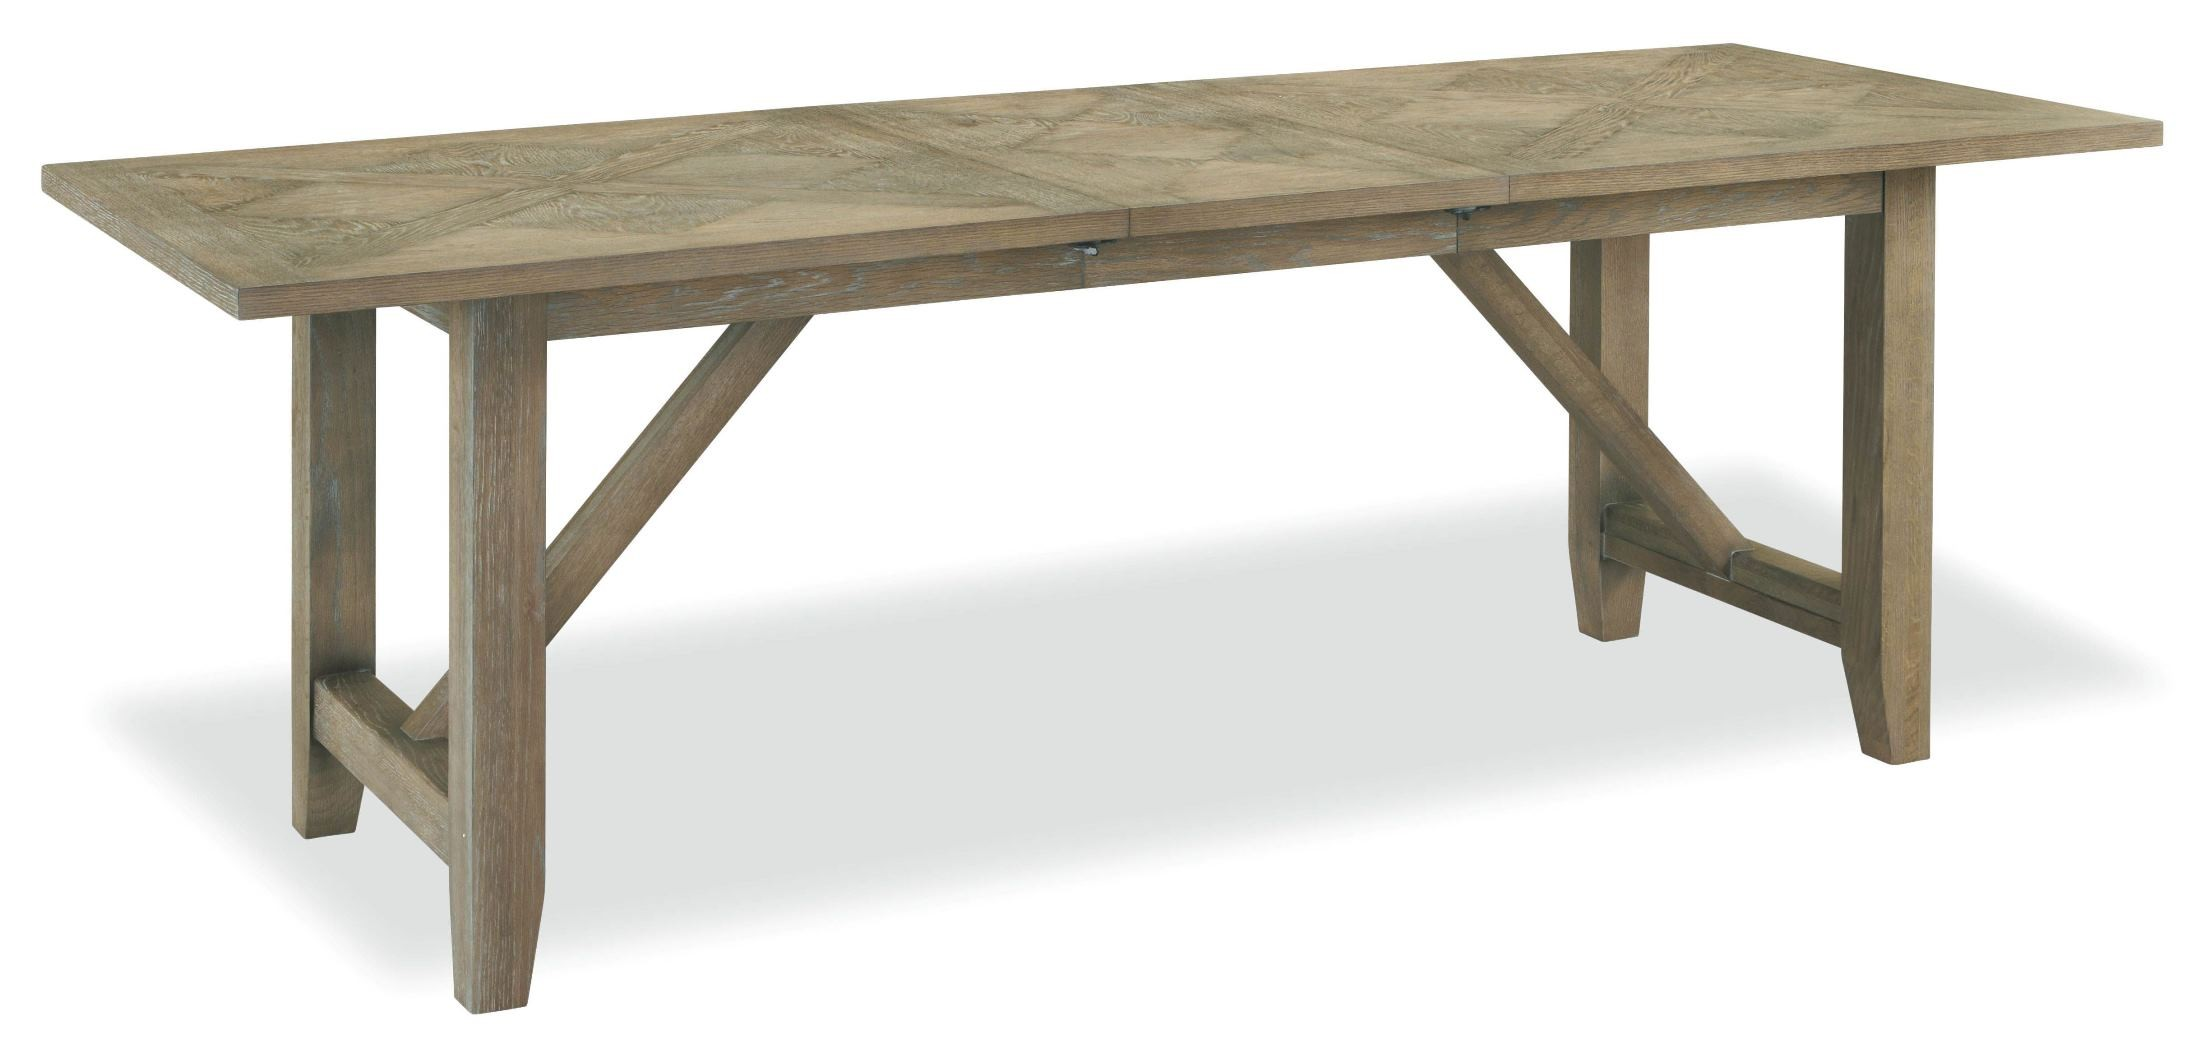 Berkeley3 Studio Chelsea Kitchen Table From Universal 316751 Coleman Furniture